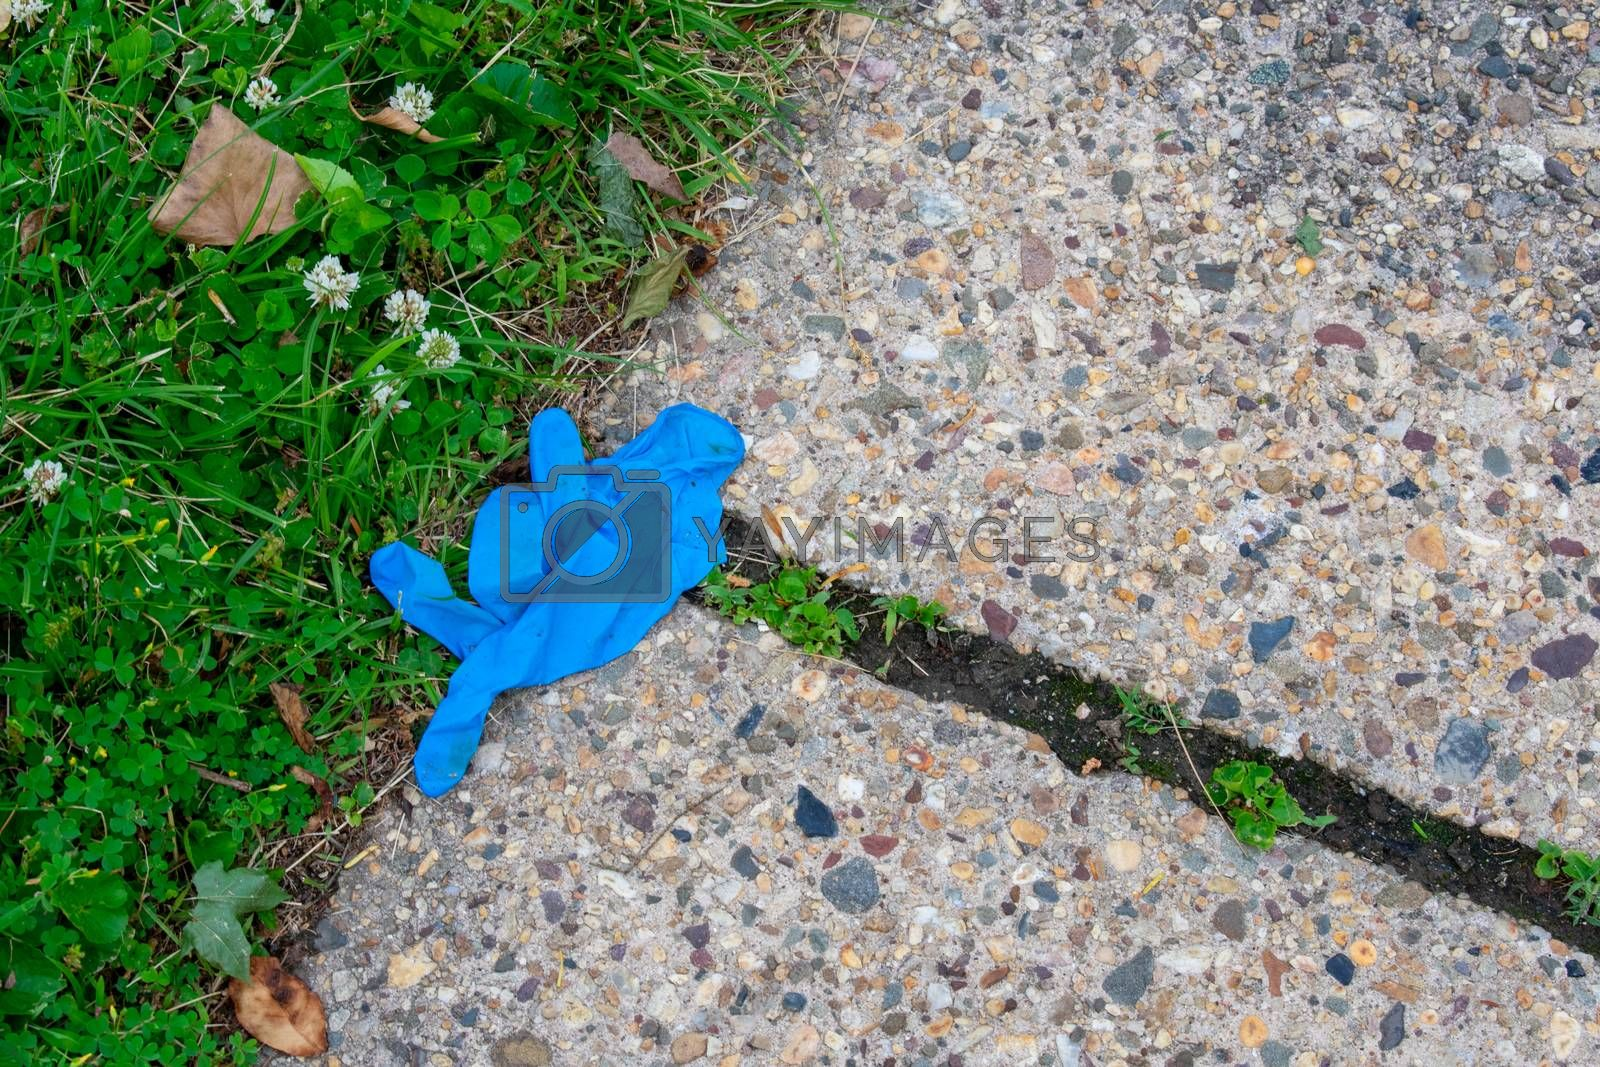 An Old Blue Medical Glove on the Sidewalk for Protection Against COVID-19